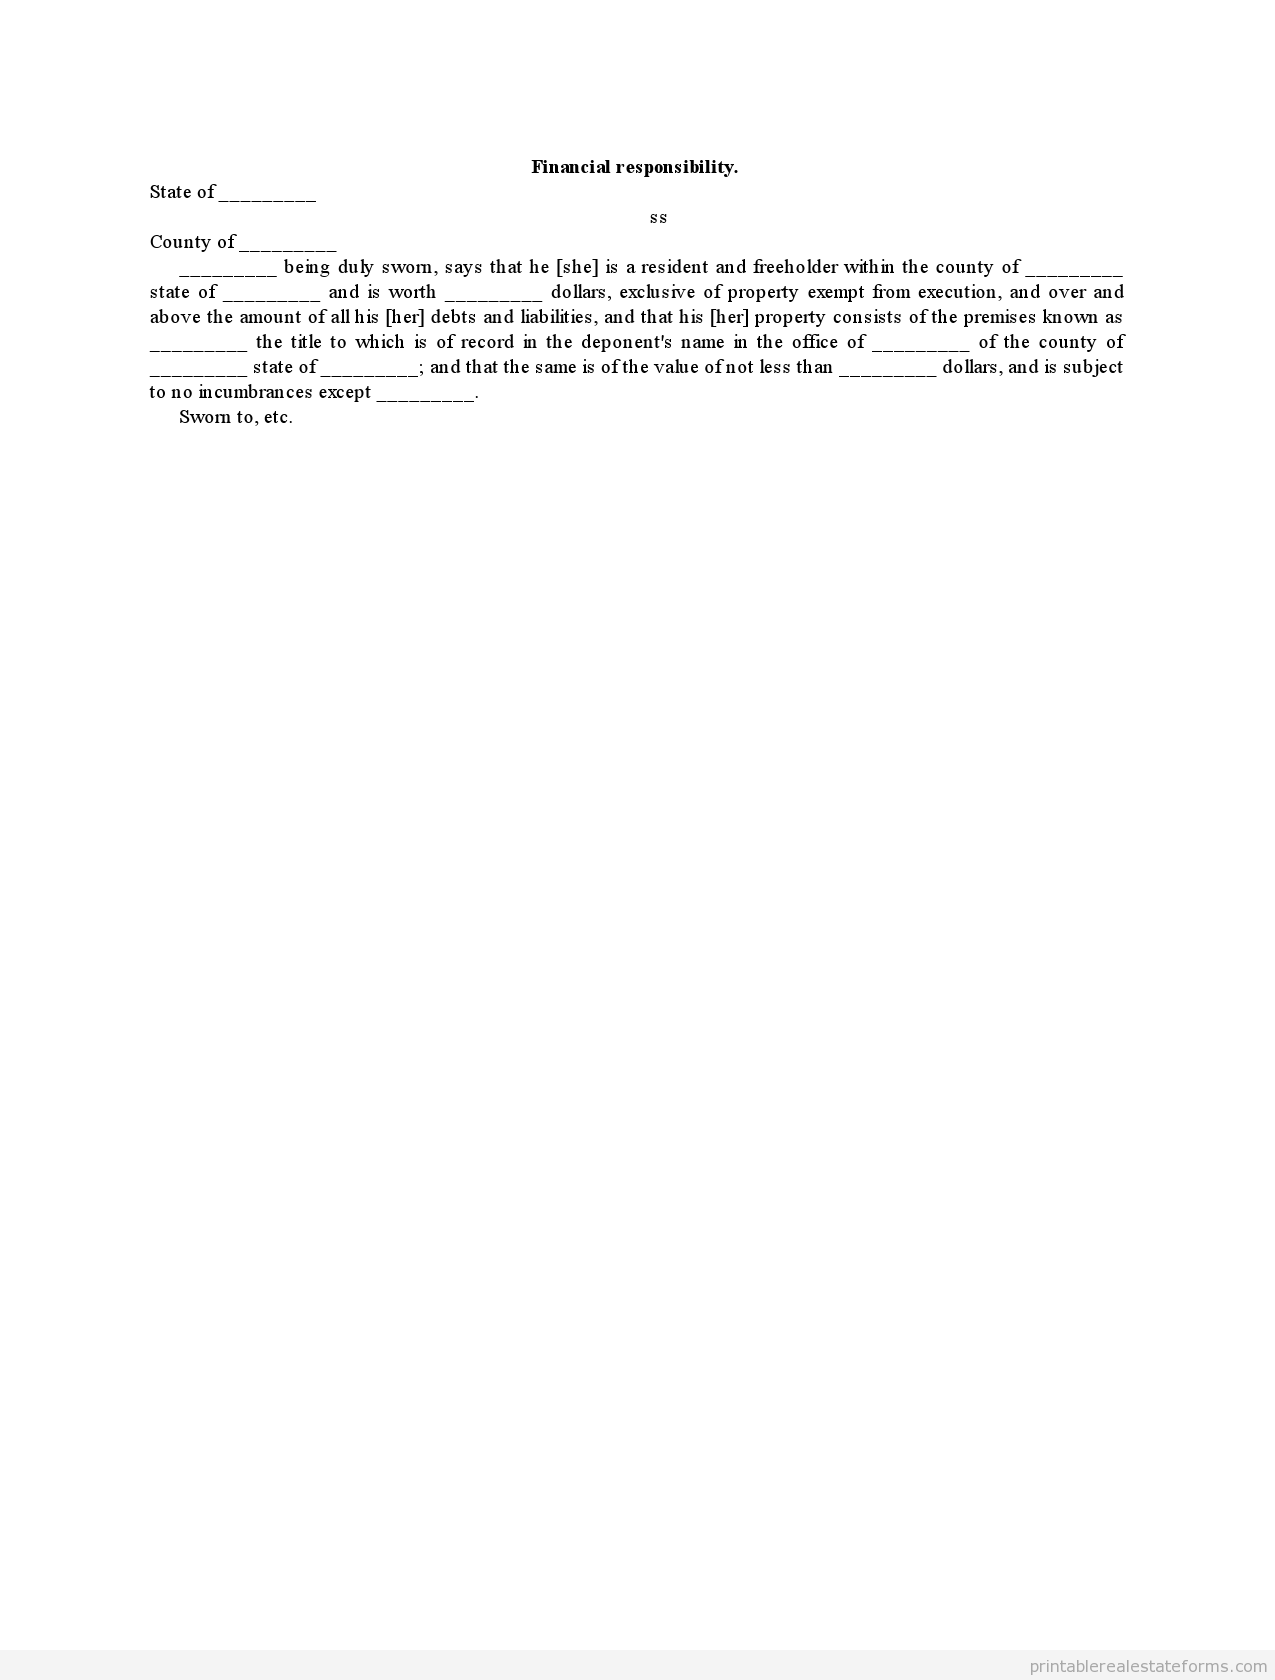 Sample Printable Financial Responsibility Form  Sample Real